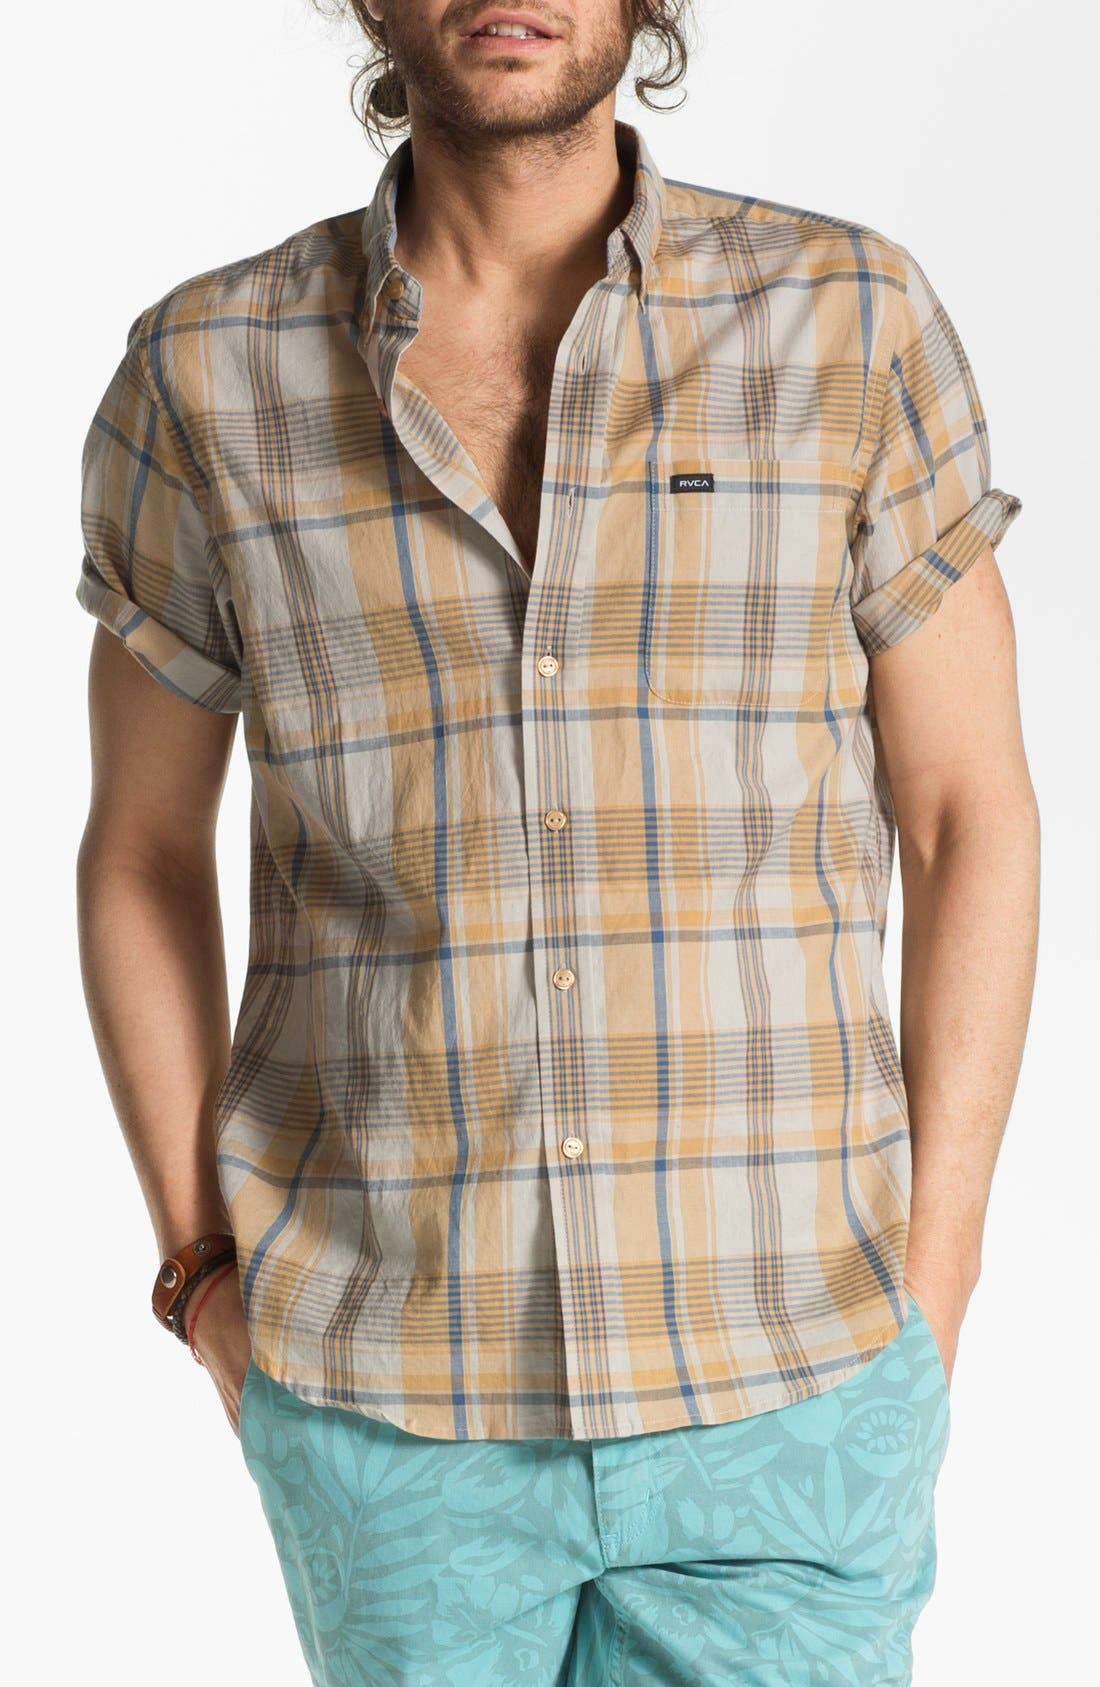 Alternate Image 1 Selected - RVCA 'Nettle' Plaid Woven Shirt